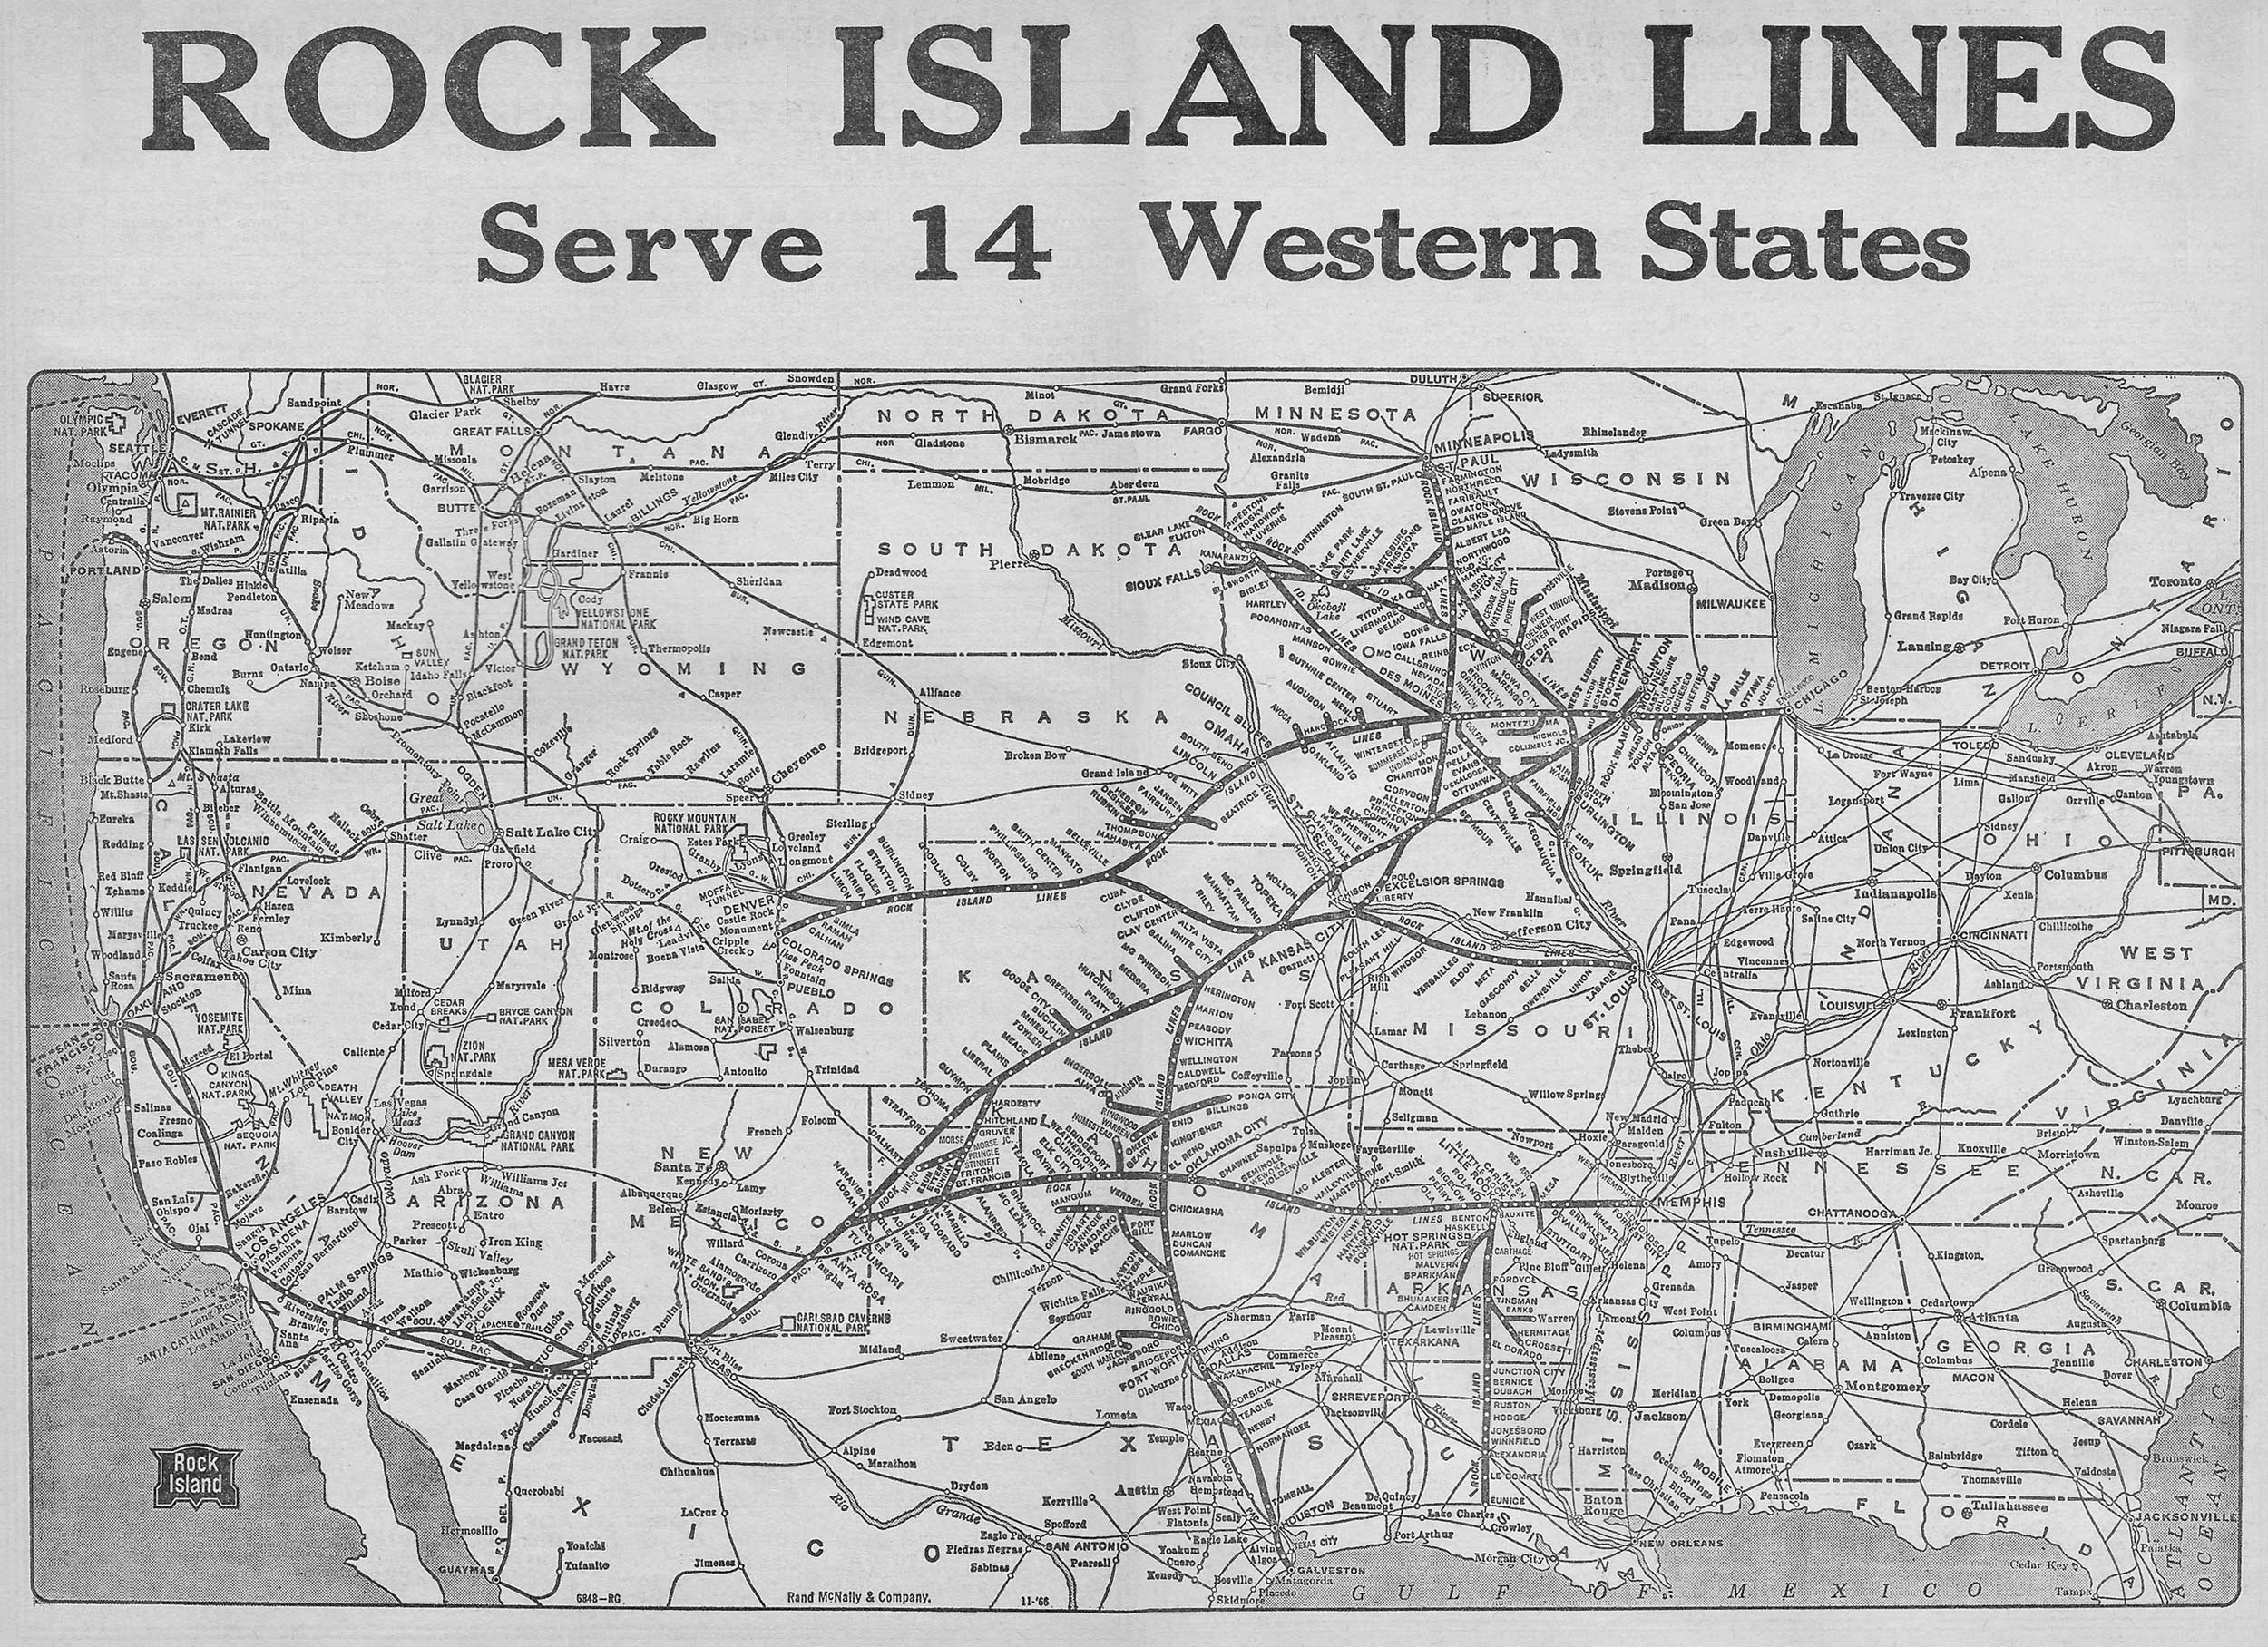 Chicago, Rock Island and Pacific Railroad, The Rock Island Line on southern pacific railroad map, union pacific division map, northern pacific railway map, 1982 kansas railroad map, kansas state land map, southern pacific system map, atlantic and pacific railroad map, kansas pacific railroad workers, union pacific railroad map, central pacific railroad map, kansas pacific railroad route, missouri pacific railroad map, kansas tornado map, kansas pacific railroad history, mopac map, kansas on usa map, current kansas railroad map, union pacific system map,